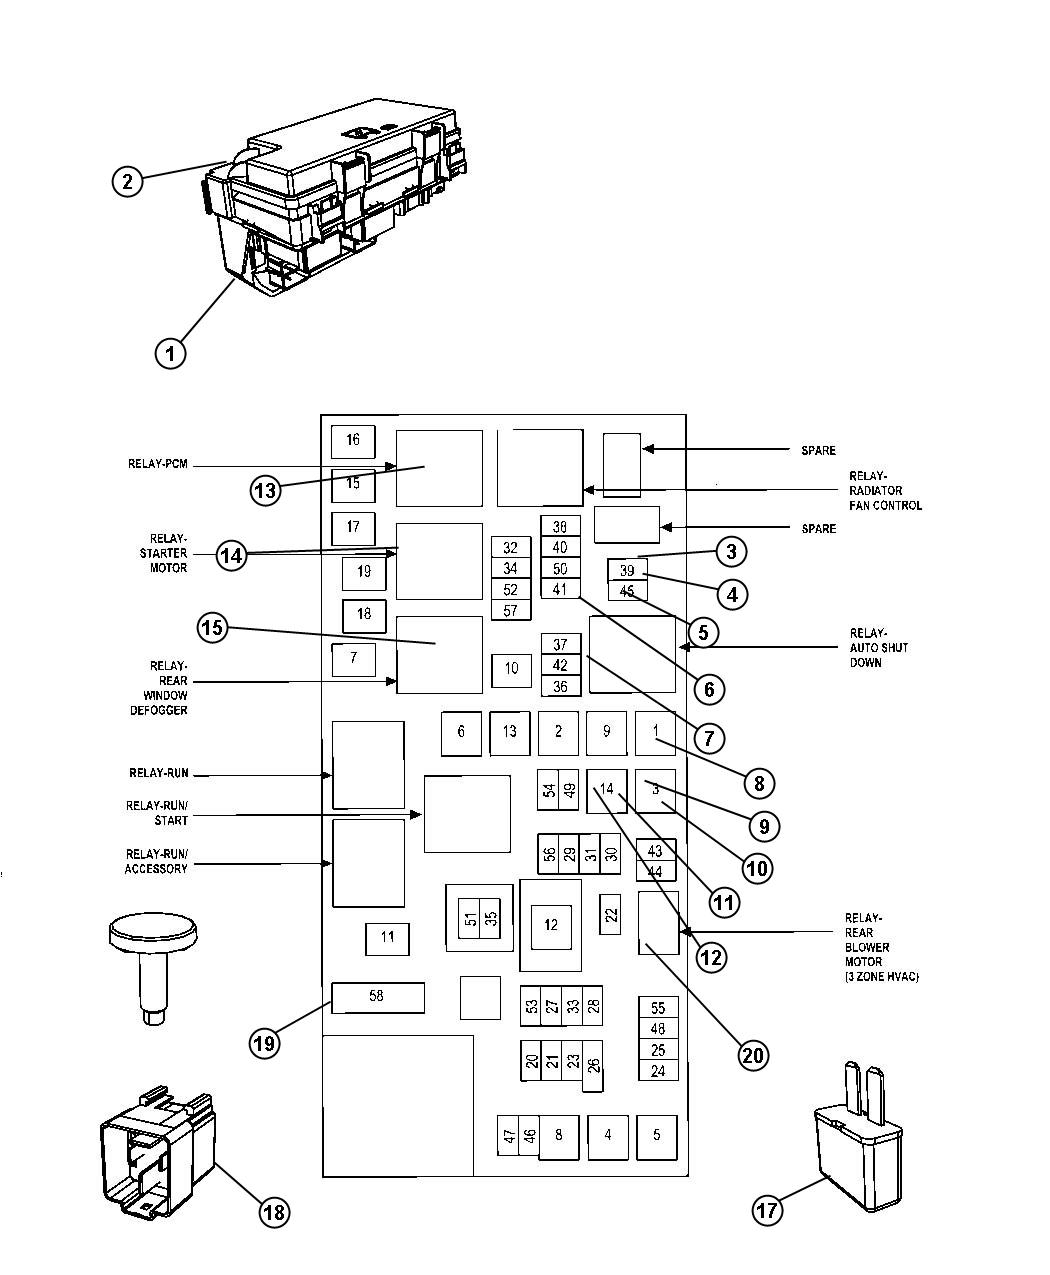 9c468 interior fuse box location 19901996 buick regal 1996   wiring  resources  wiring resources